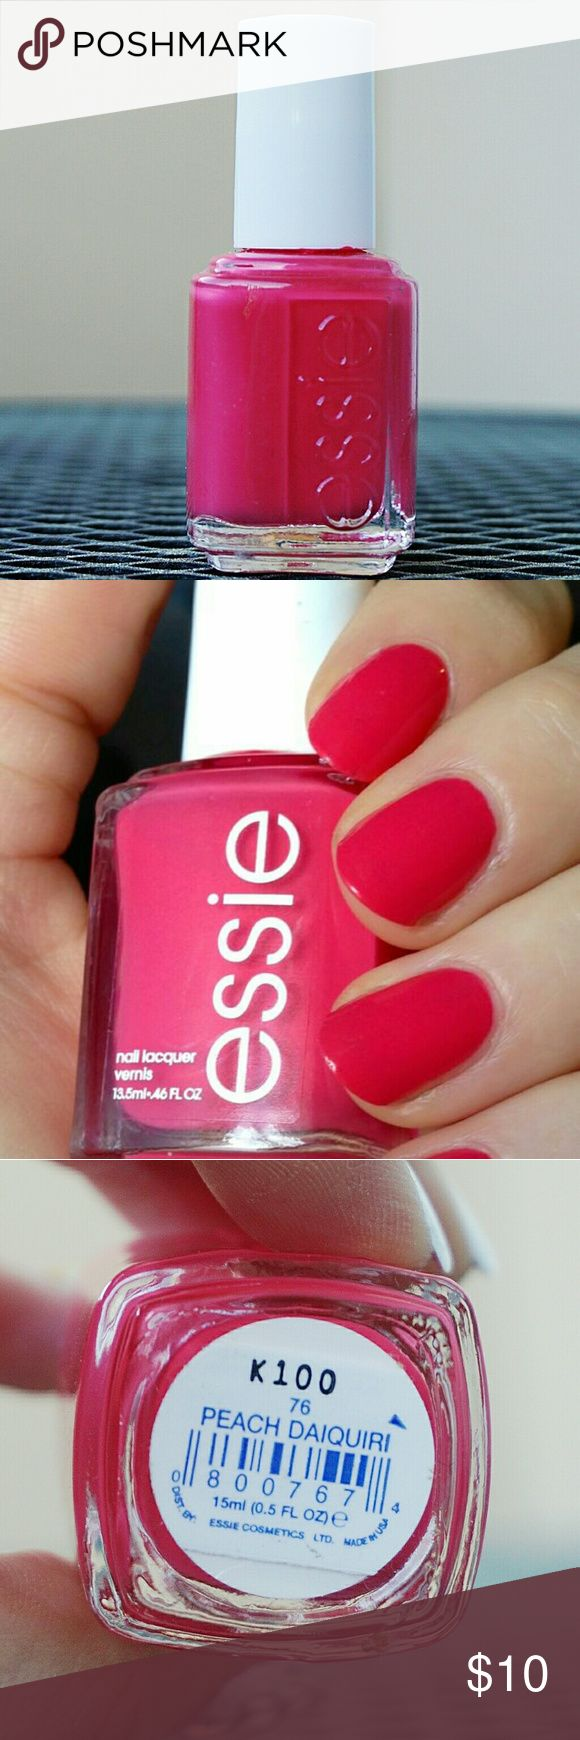 Essie Peach Daiquiri Hot Pink Polish Never Used Nail Polish. Beautiful pink color, doesn't look good on my skin tone. Ships in 1-3 days, please bundle. Essie Makeup